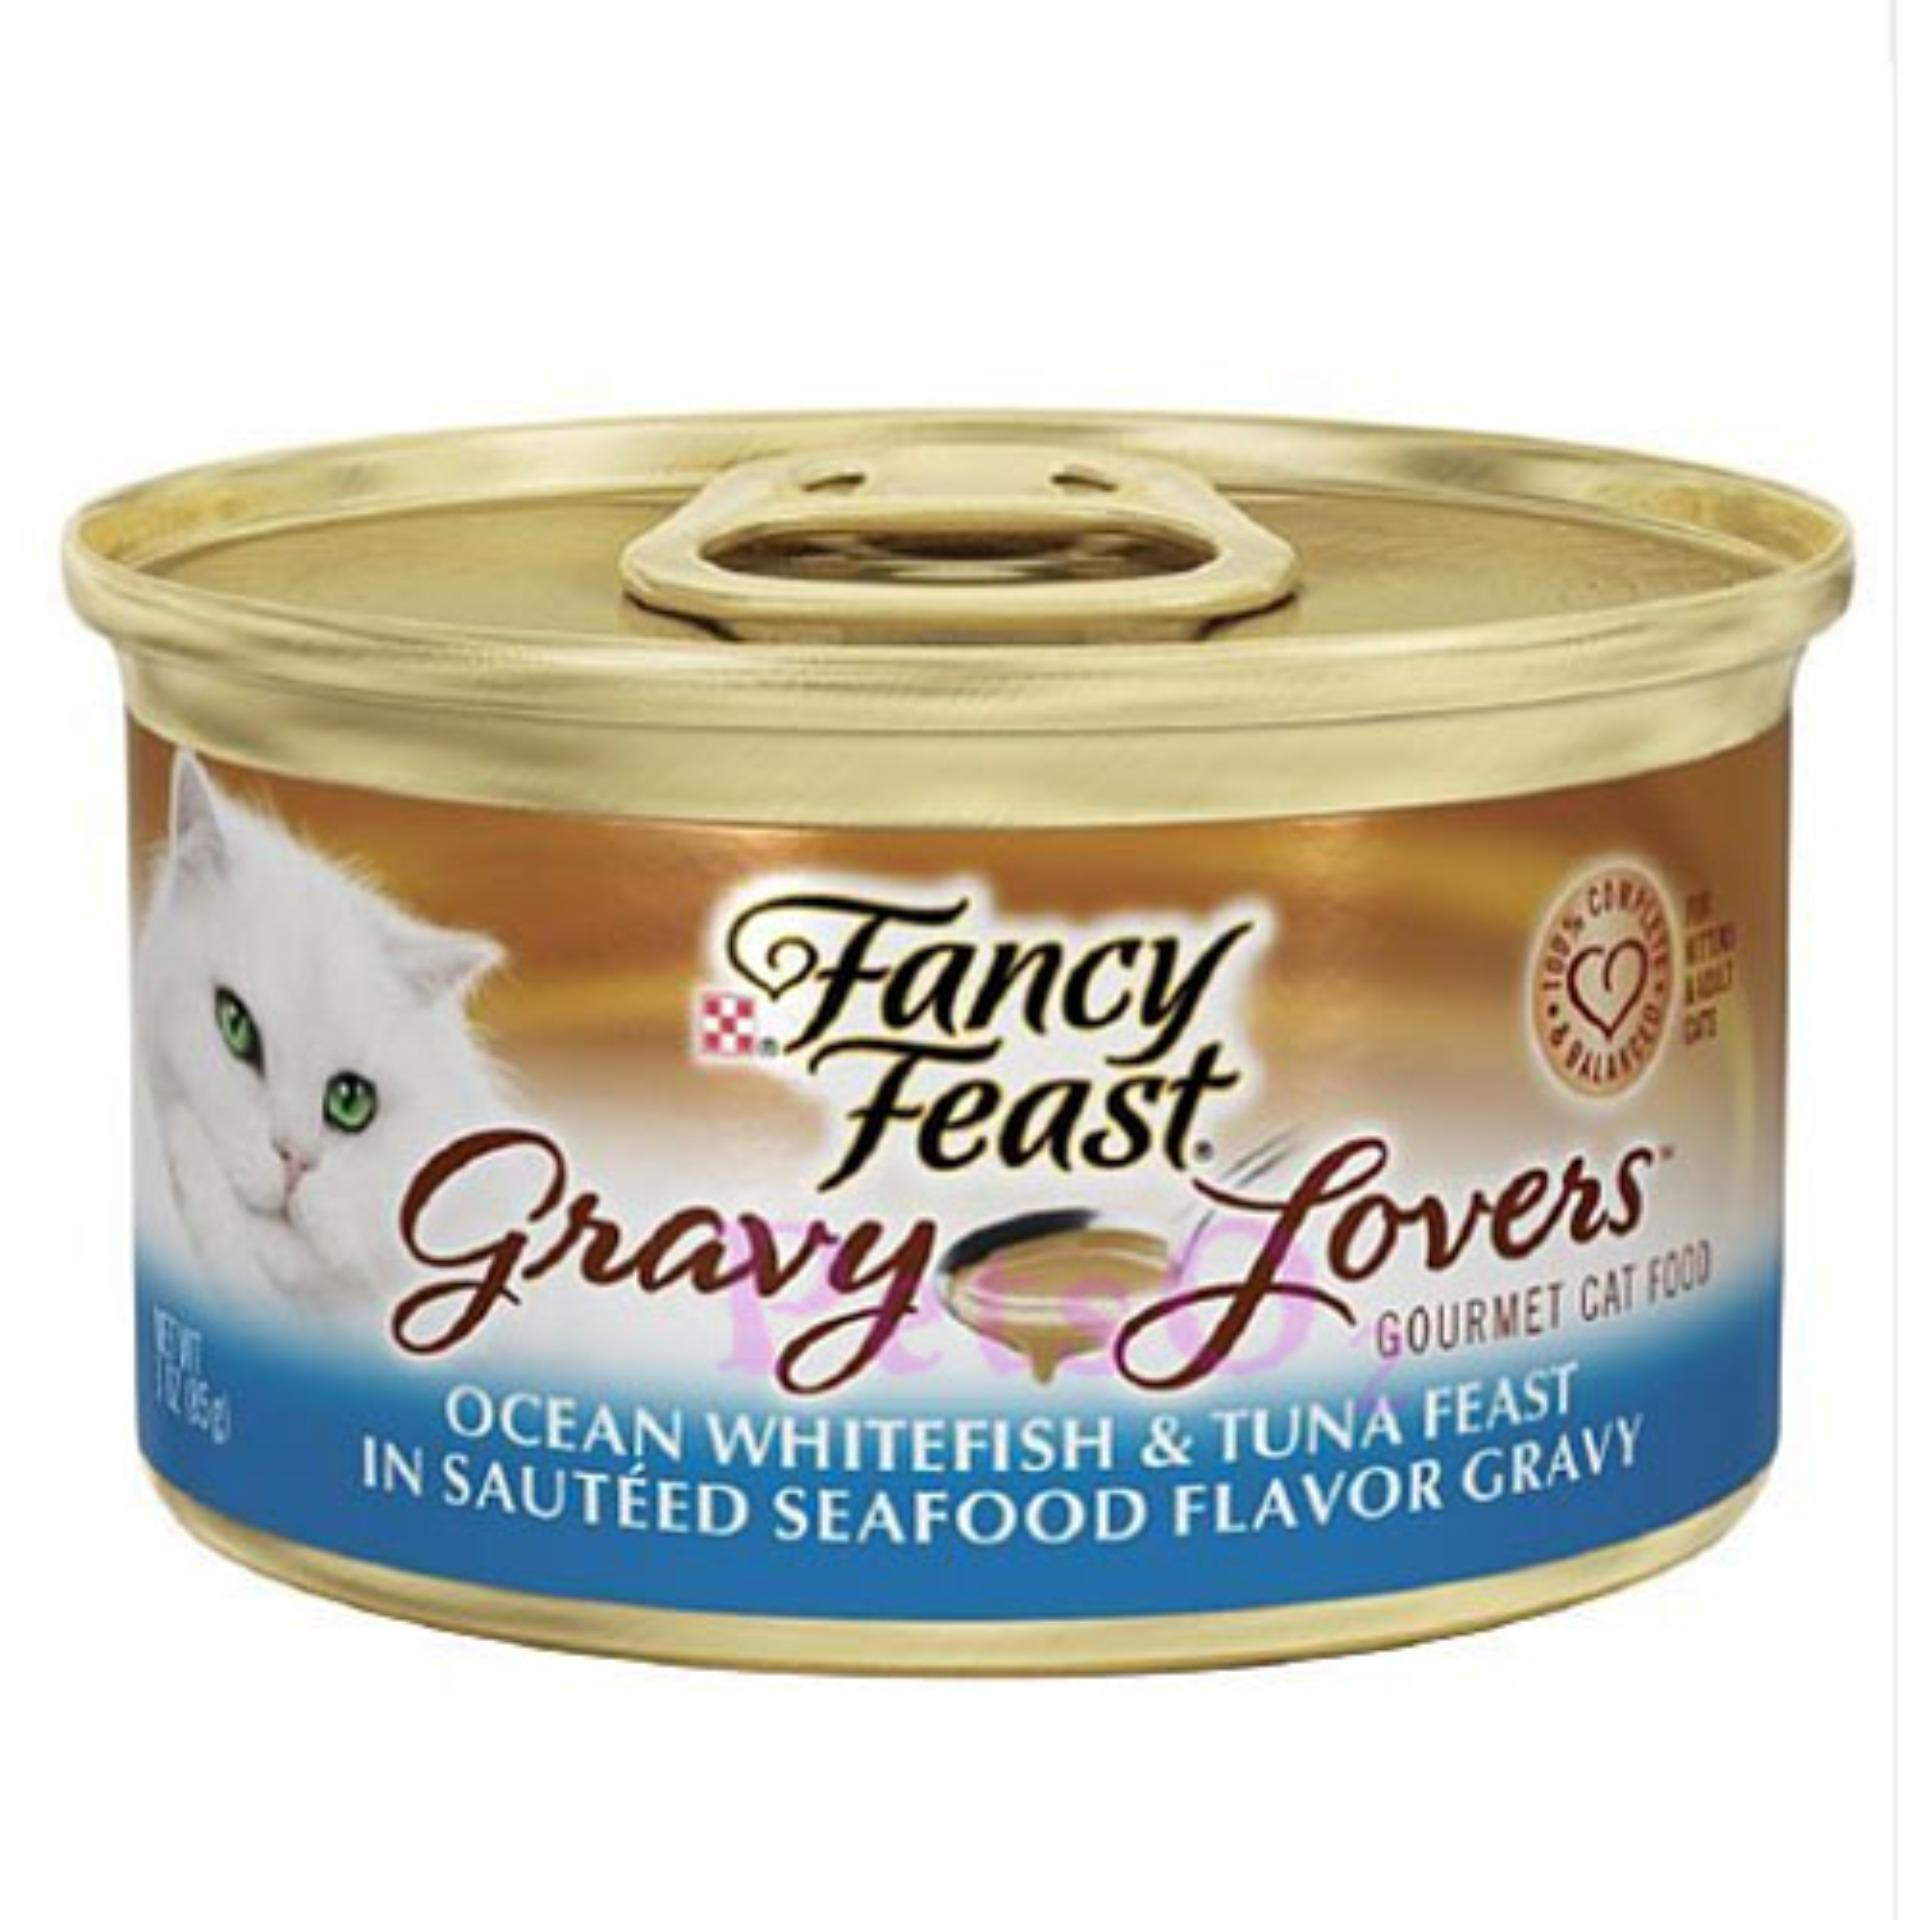 Where Can I Buy Fancy Feast Gravy Lovers Ocean Whitefish Tuna 85G X24